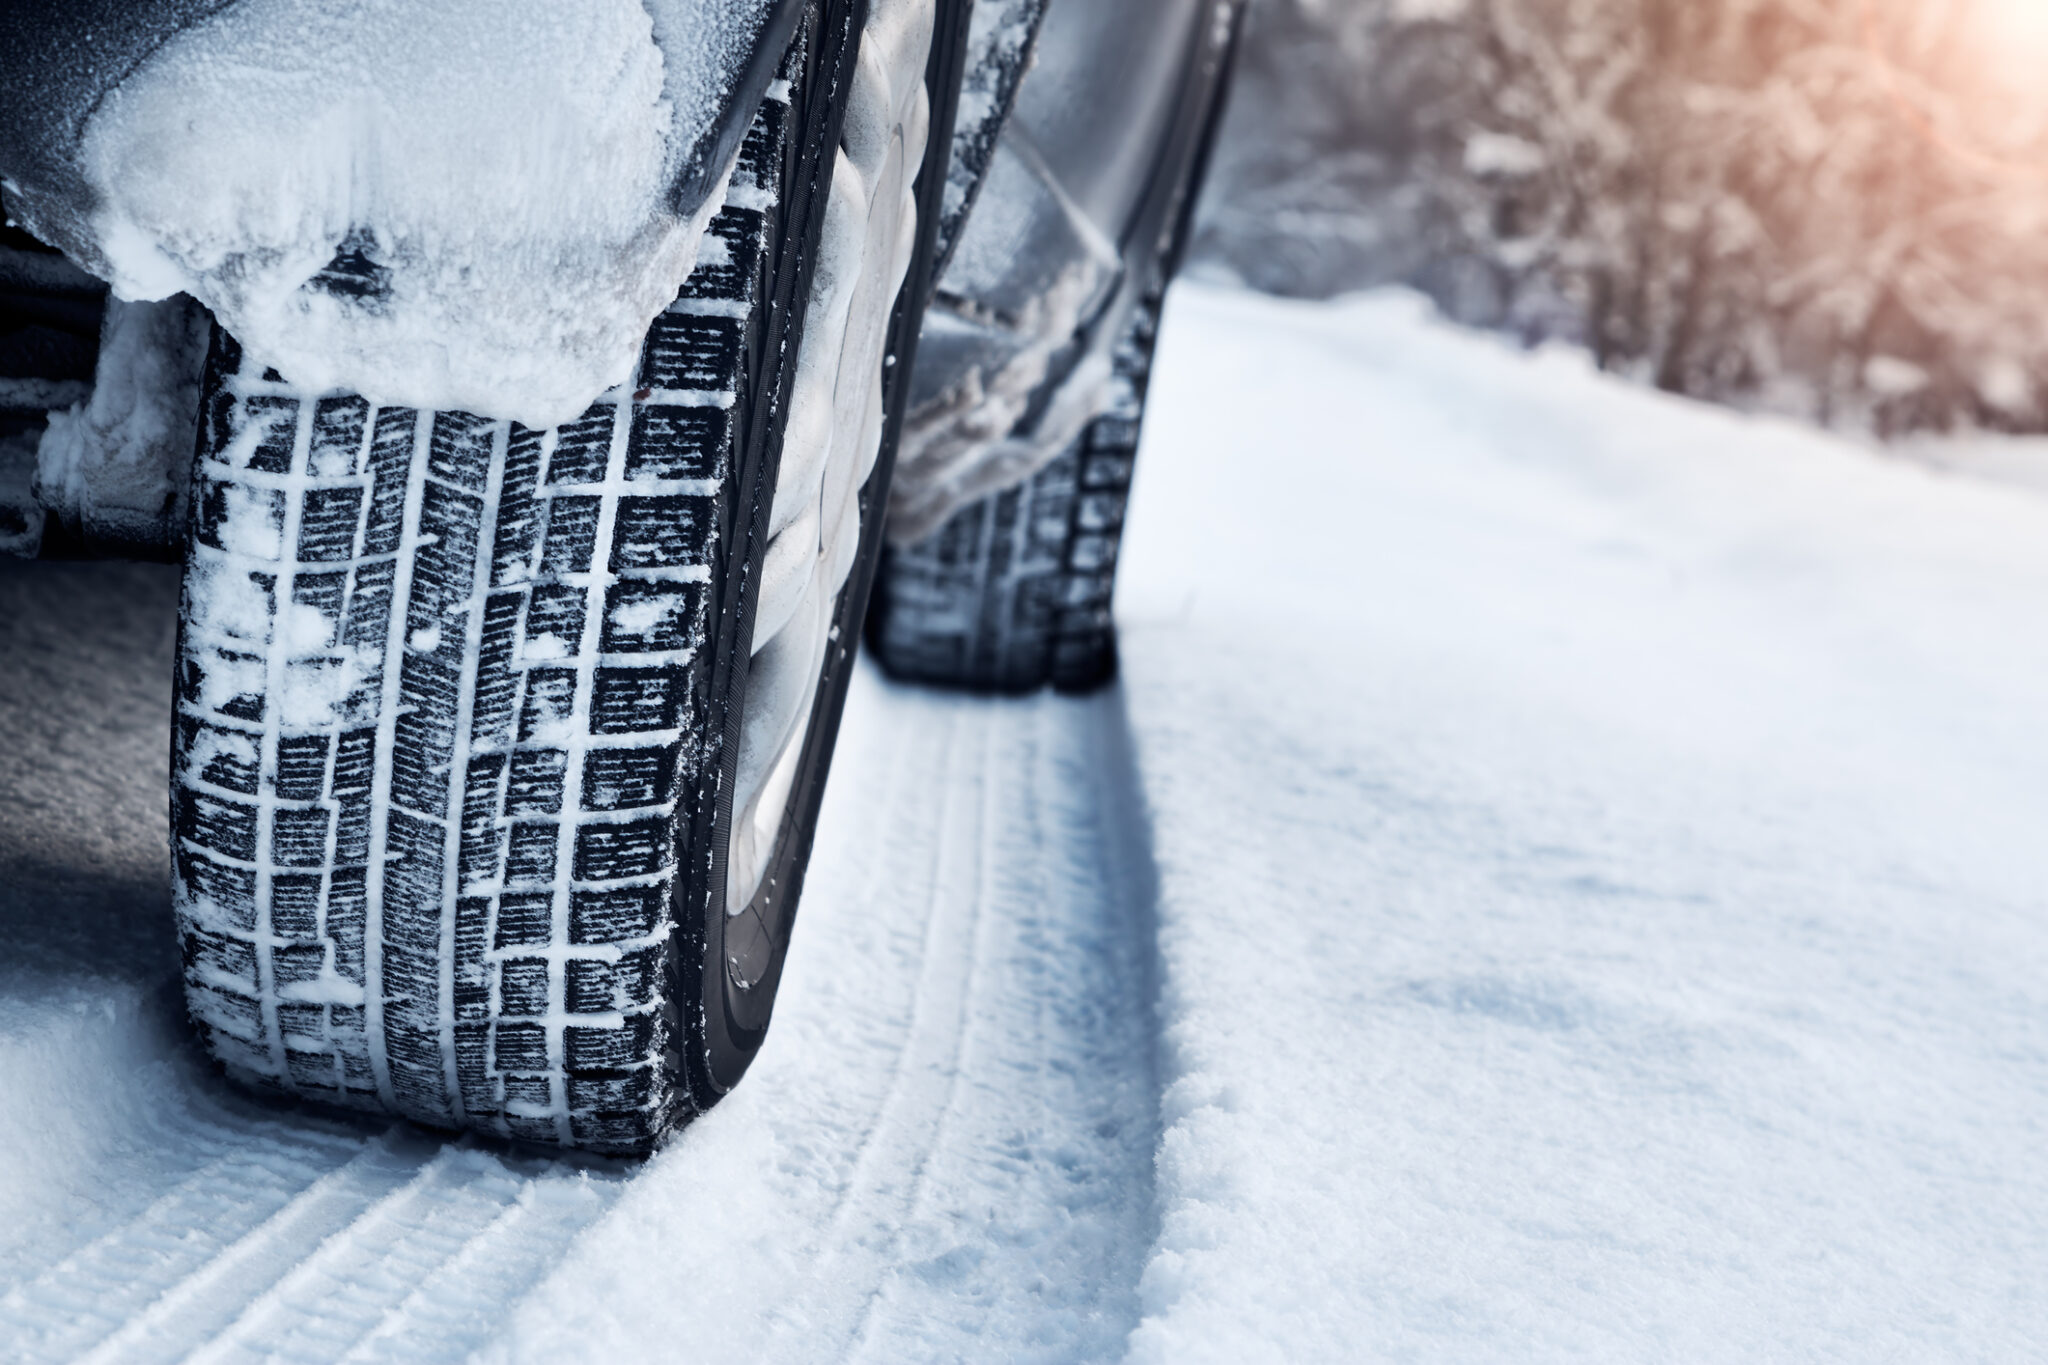 How To Save On Snow Tires